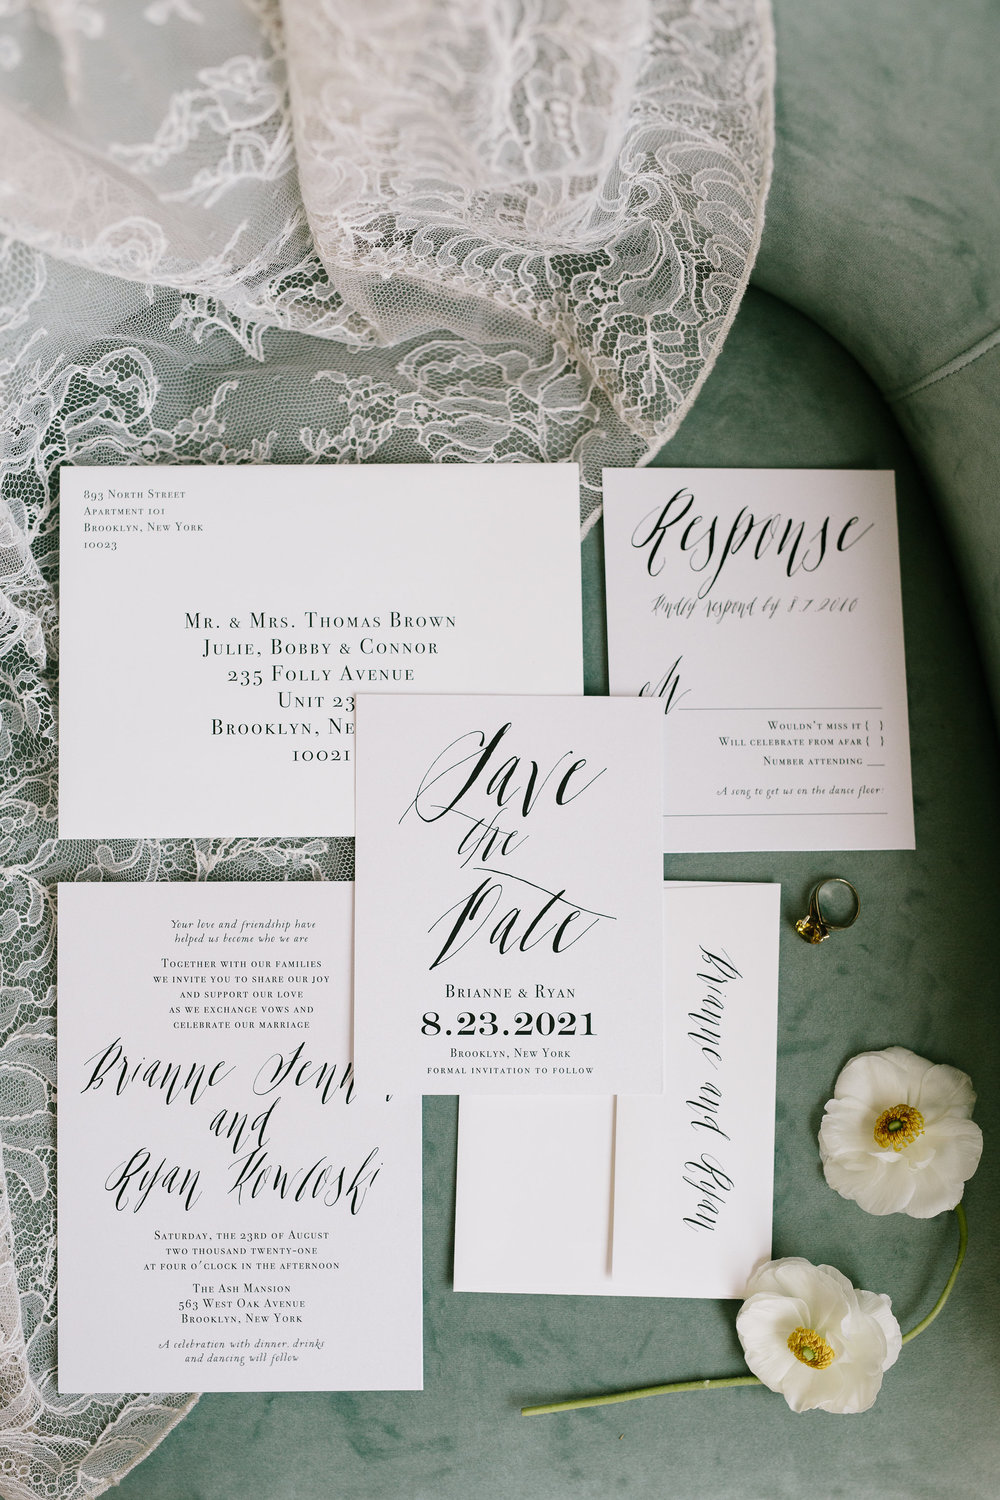 Italia Editorial shoot wedding invites